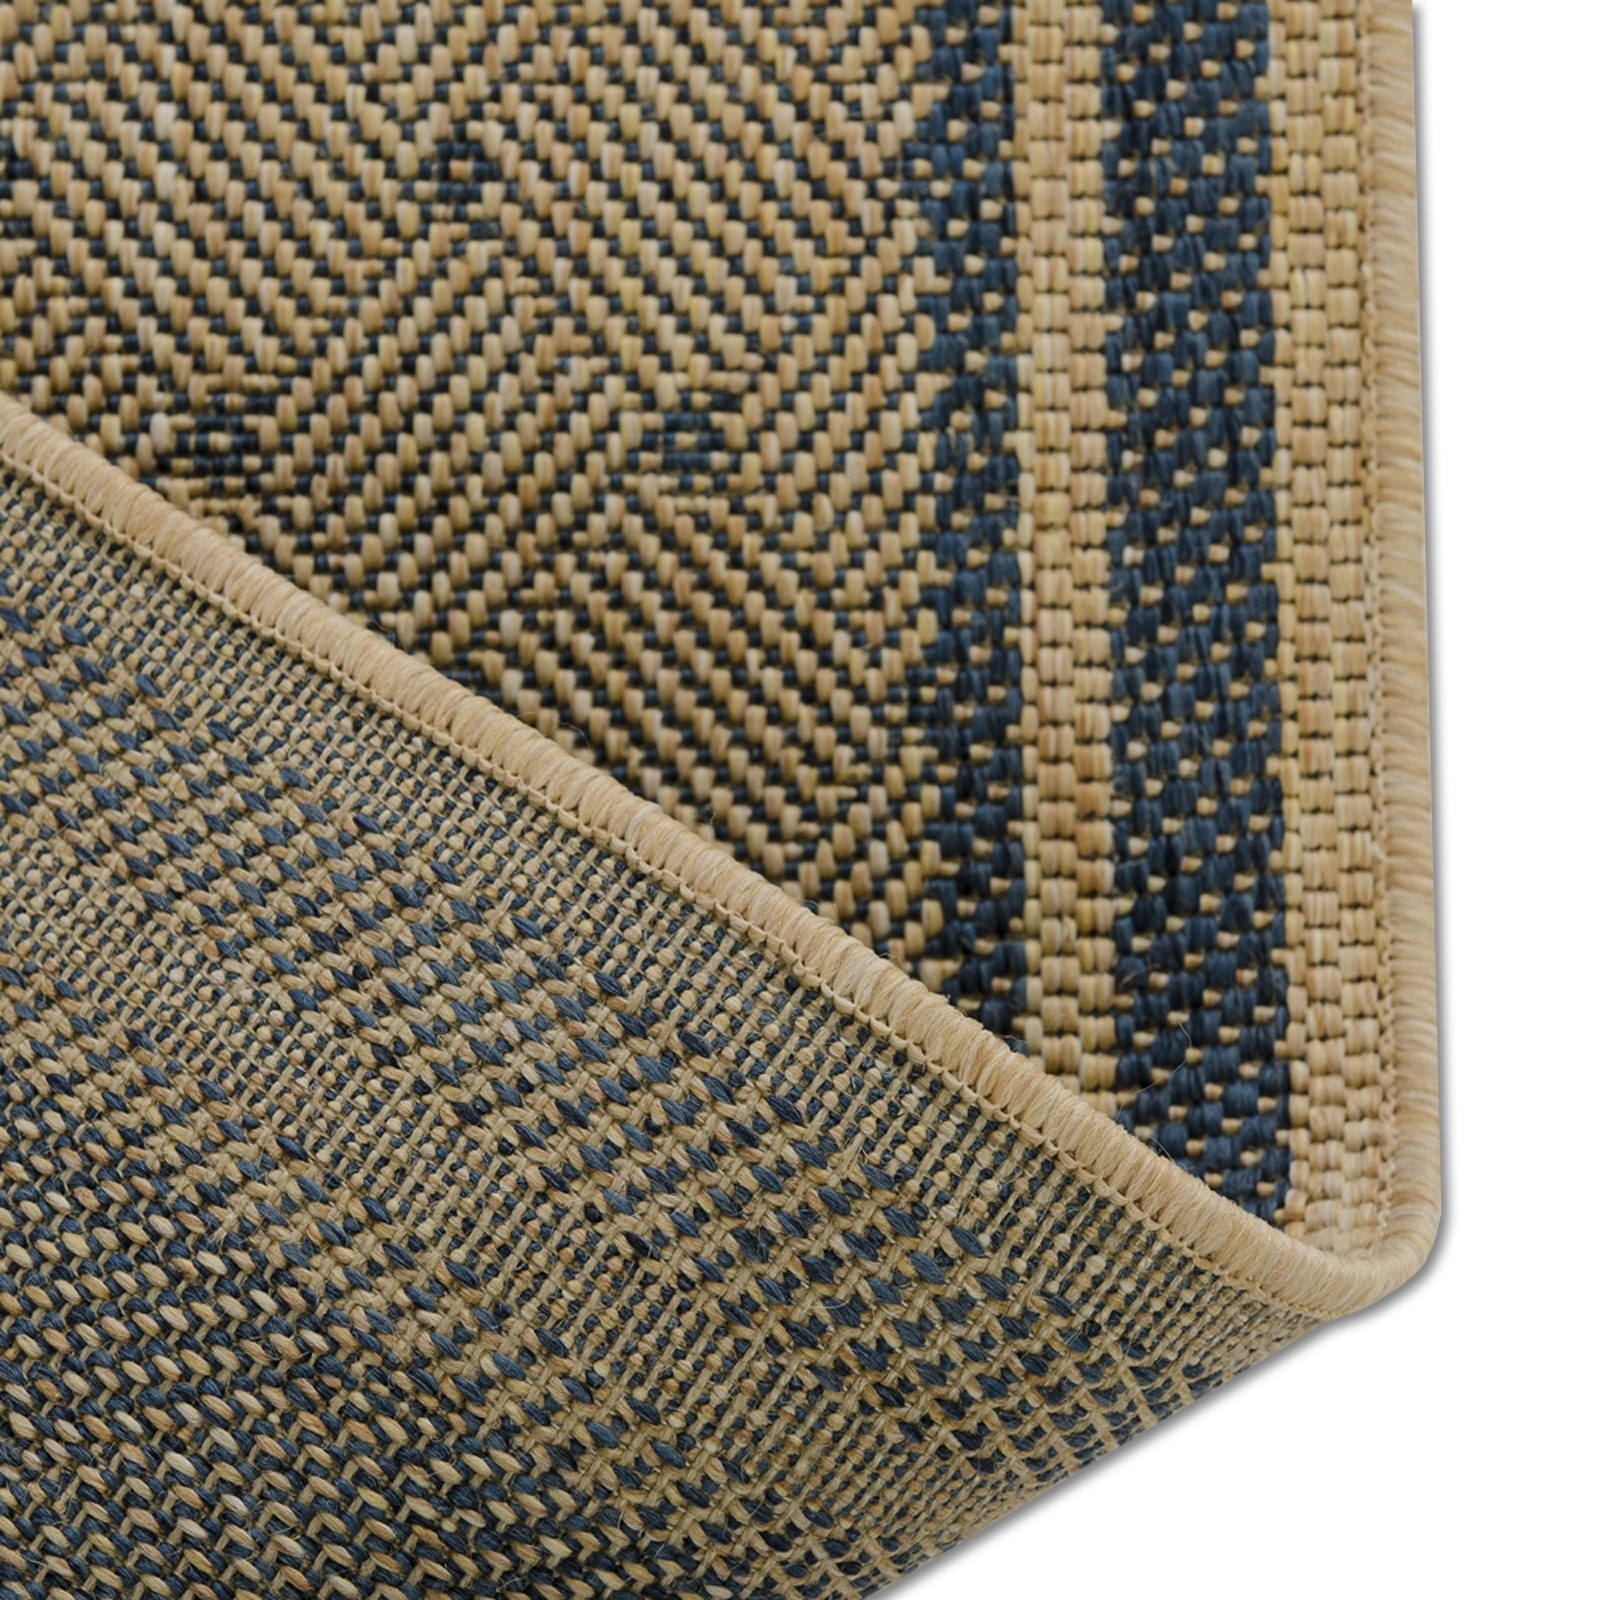 Make A Custom Zized Rug Crafthubs Pertaining To Custom Size Outdoor Rugs (Photo 8 of 15)